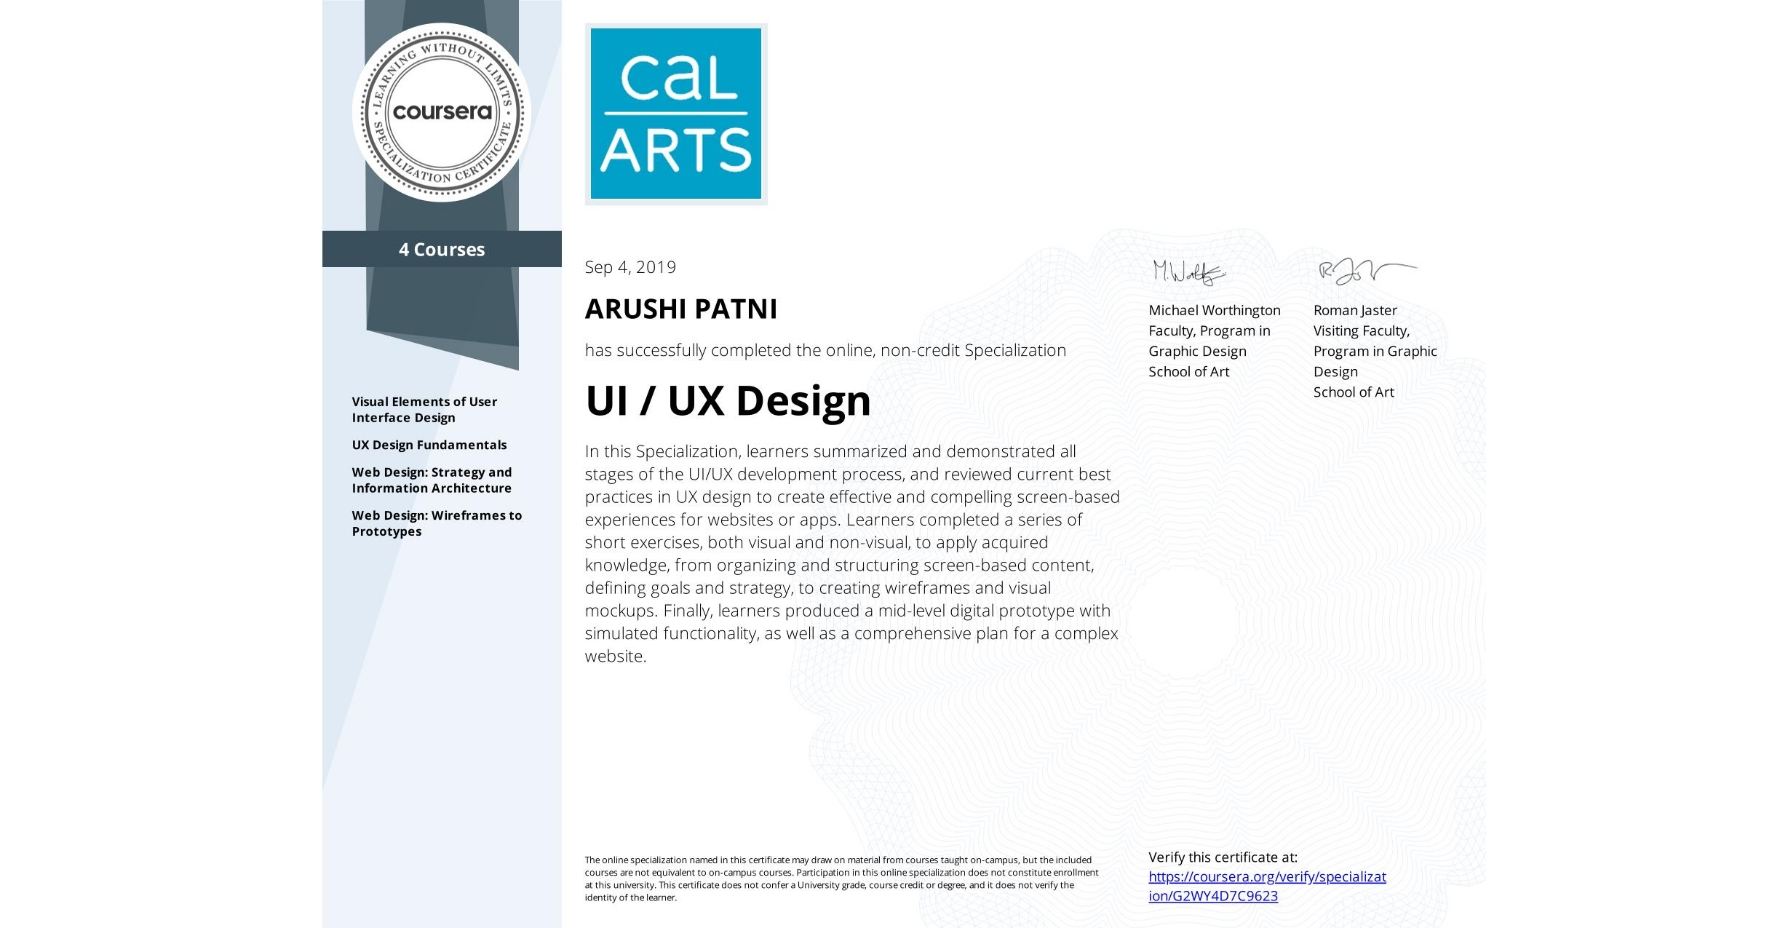 View certificate for ARUSHI PATNI, UI / UX Design, offered through Coursera. In this Specialization, learners summarized and demonstrated all stages of the UI/UX development process, and reviewed current best practices in UX design to create effective and compelling screen-based experiences for websites or apps. Learners completed a series of short exercises, both visual and non-visual, to apply acquired knowledge, from organizing and structuring screen-based content, defining goals and strategy, to creating wireframes and visual mockups. Finally, learners produced a mid-level digital prototype with simulated functionality, as well as a comprehensive plan for a complex website.